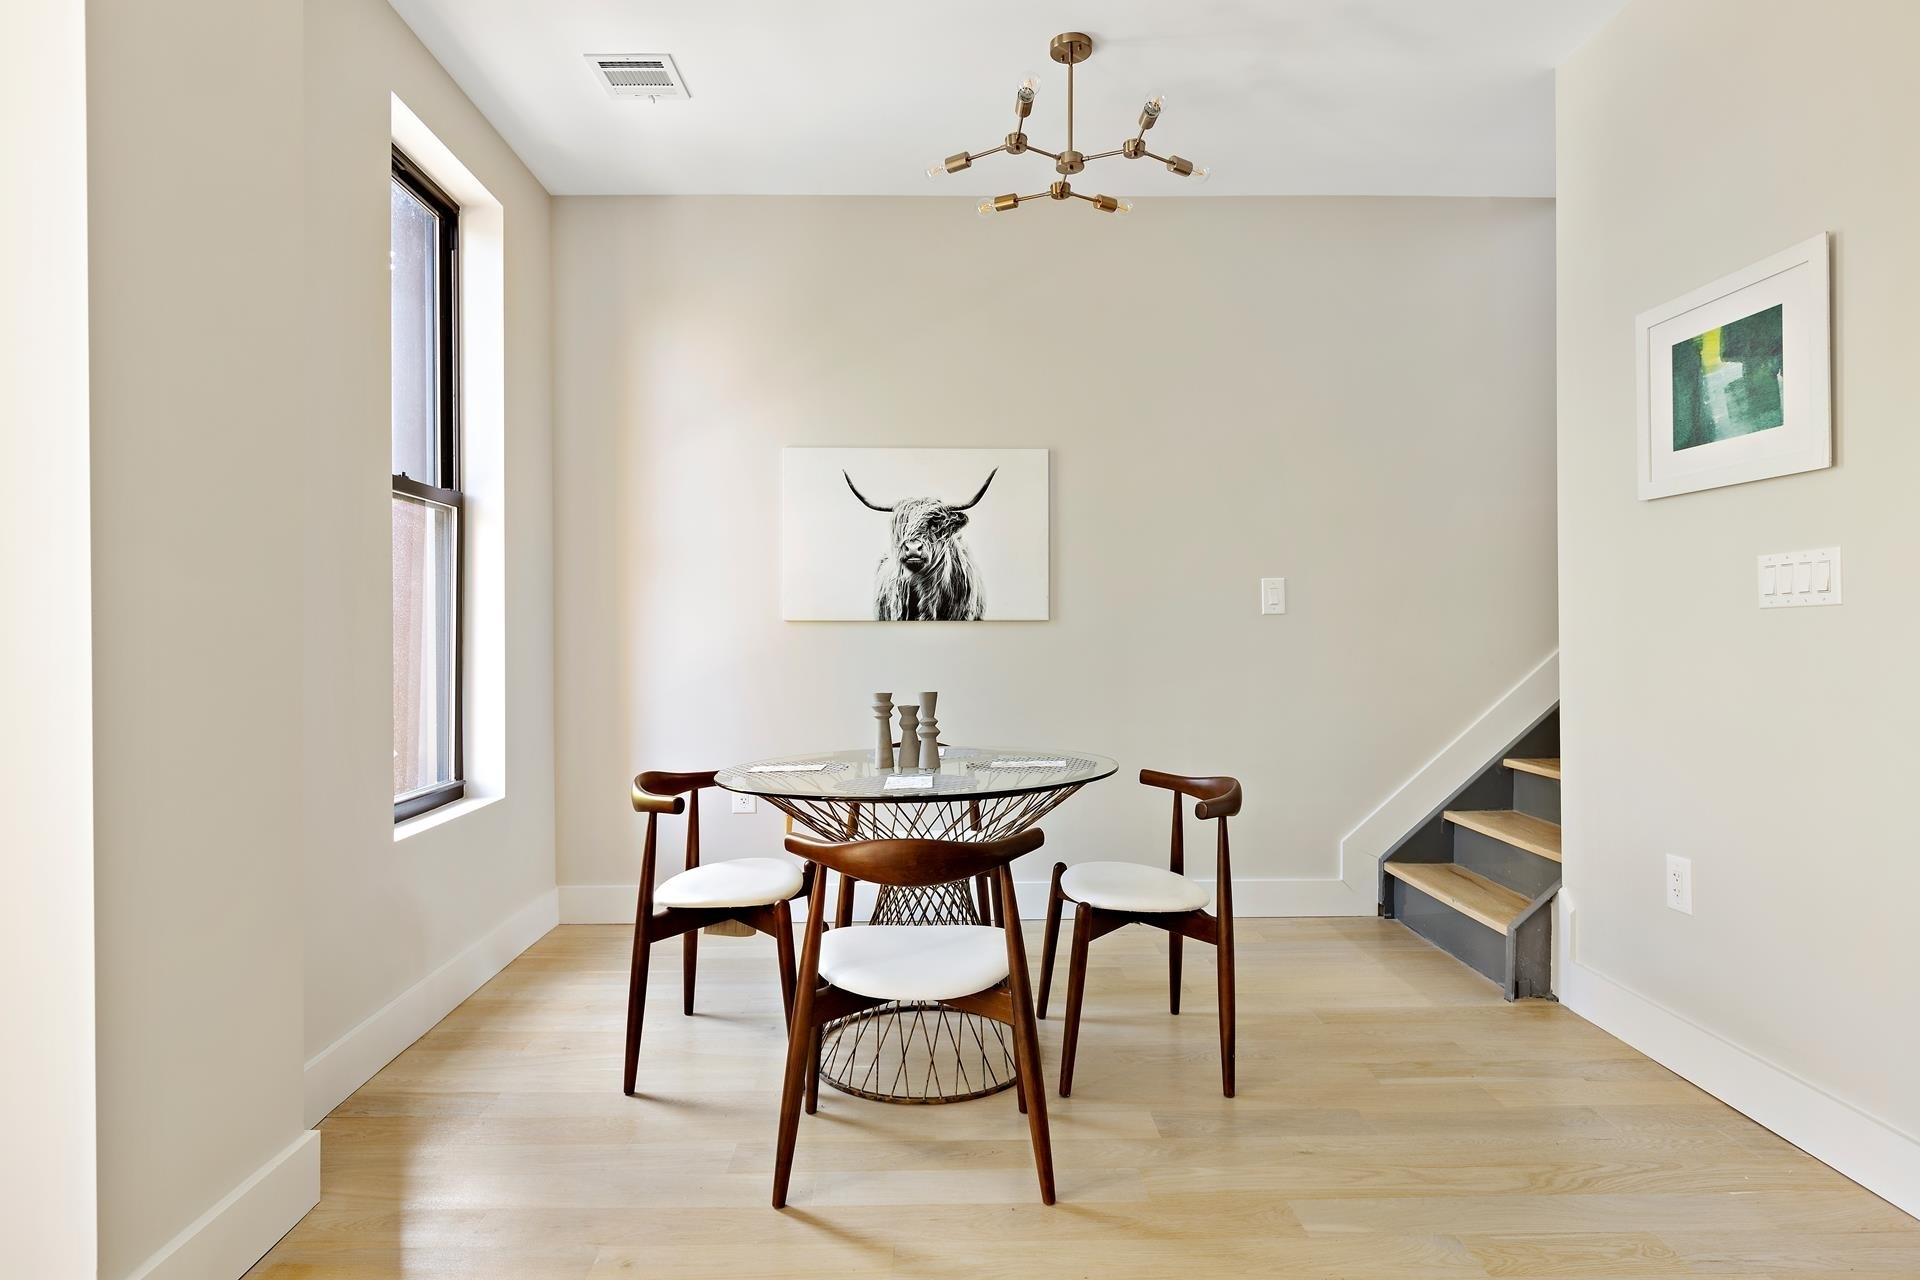 3. Condominiums for Sale at 695 Monroe St, 4 Bedford Stuyvesant, Brooklyn, NY 11221